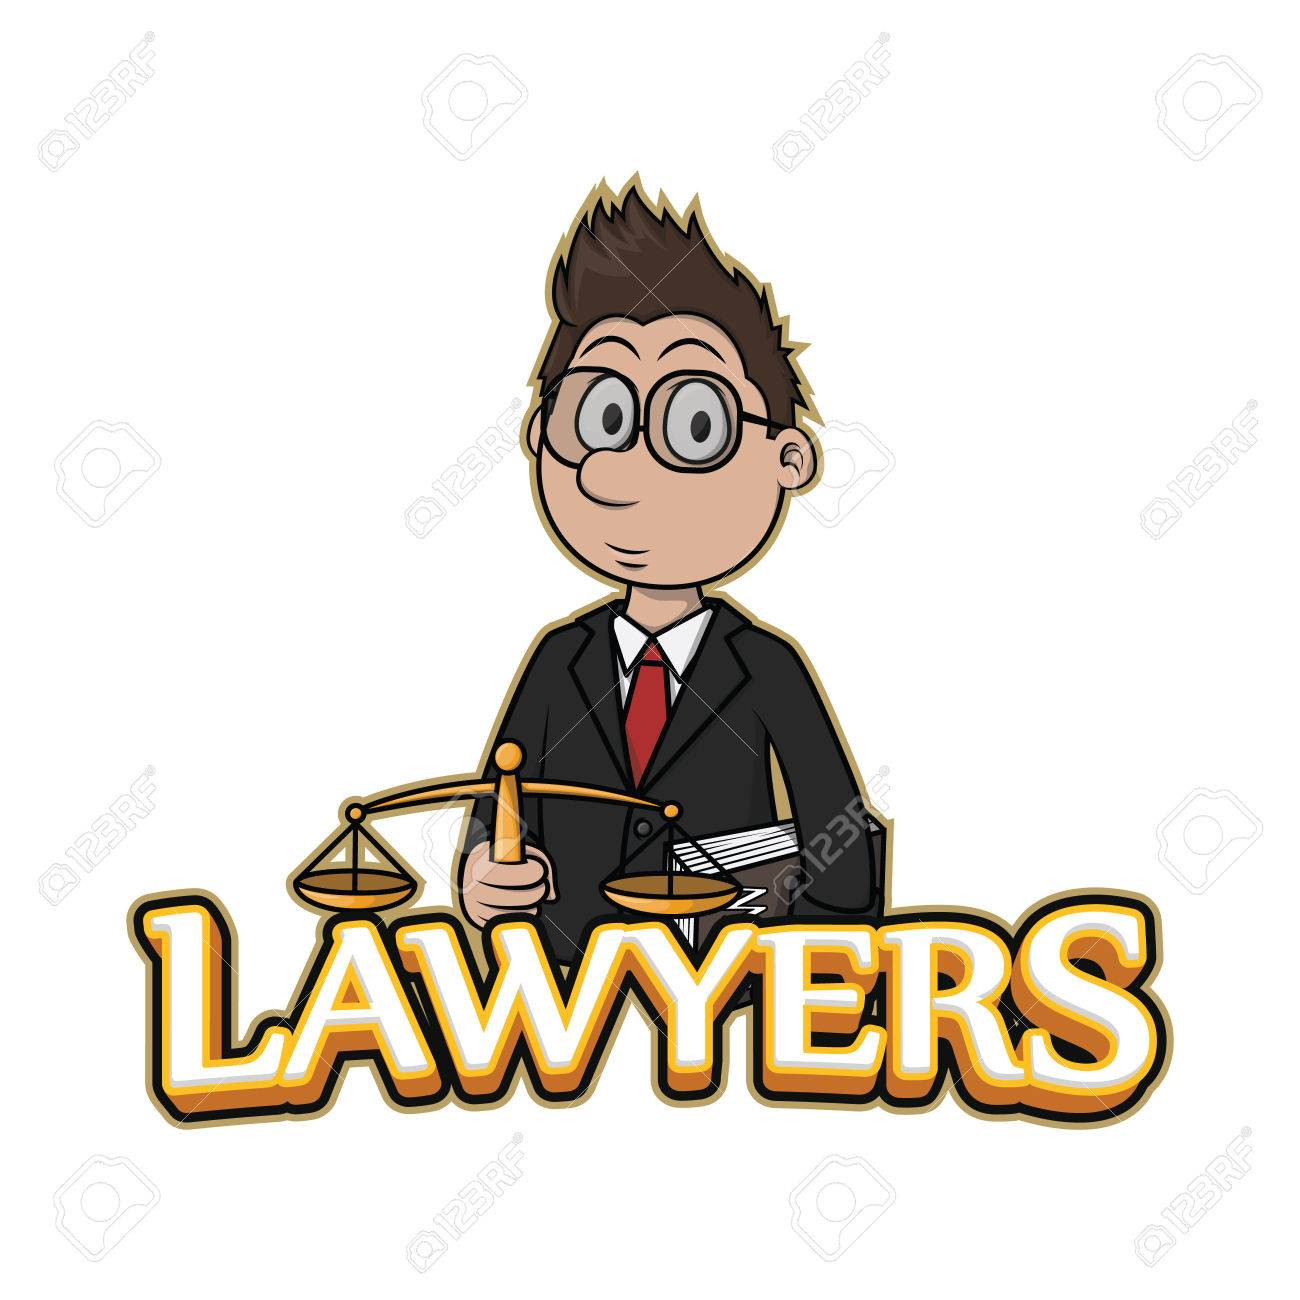 Lawyer Clipart validity 1.